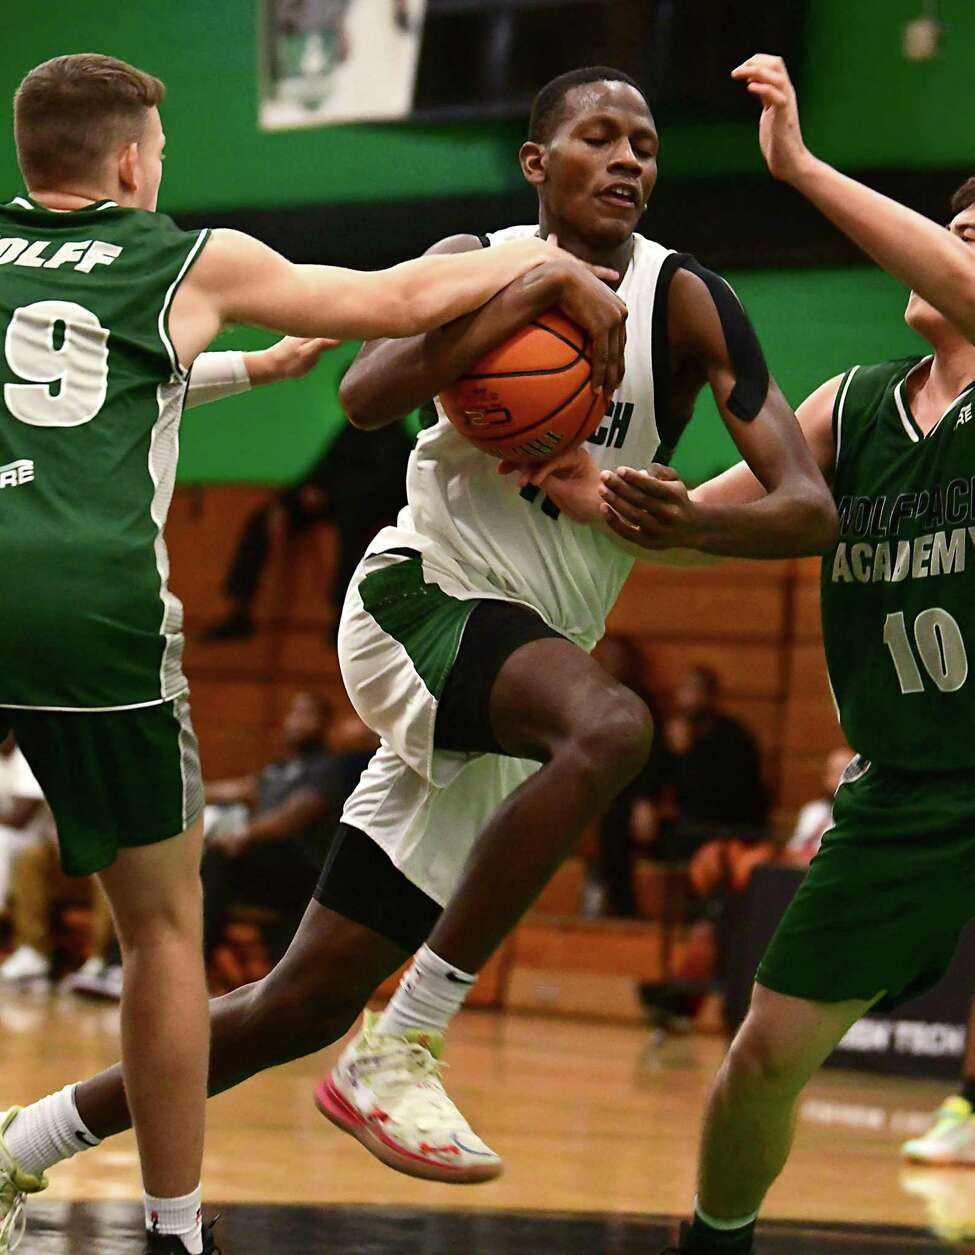 Green Tech's Justin Owens drives to the hoop against Logan Academy during a basketball game on Monday, Dec. 16, 2019 in Albany, N.Y. (Lori Van Buren/Times Union)